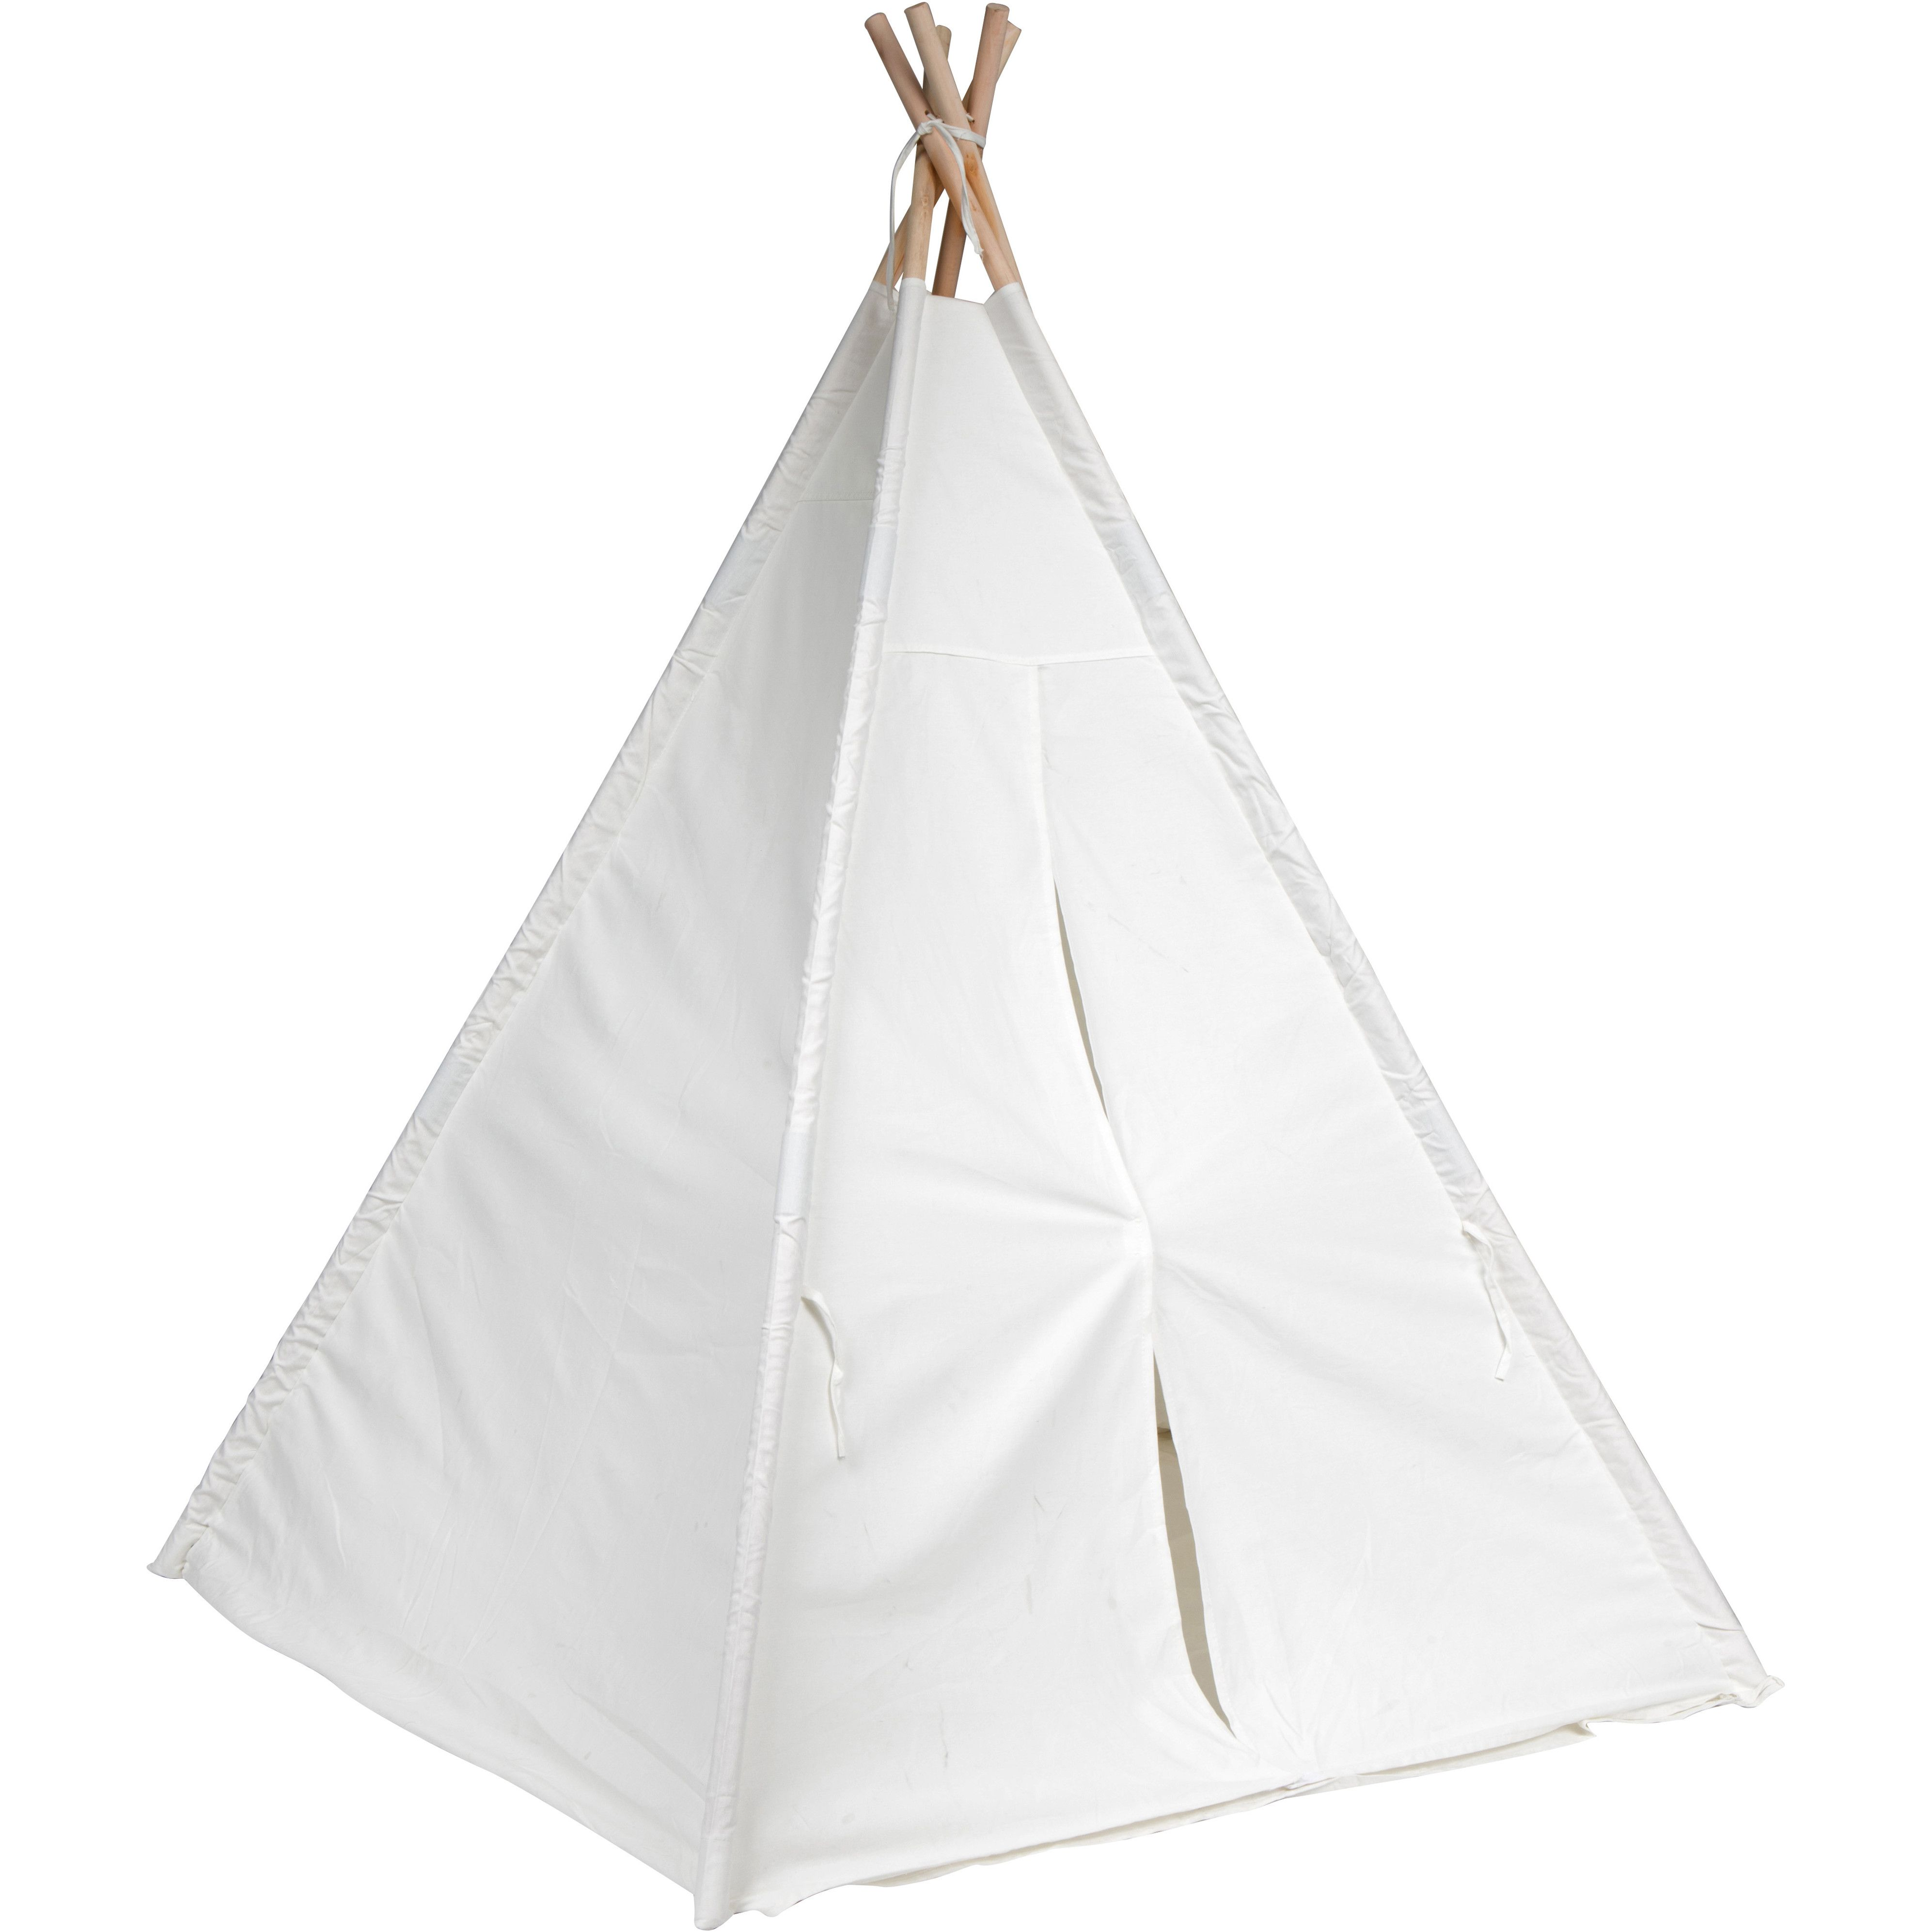 Trademark Innovations Authentic Giant Canvas Play Teepee